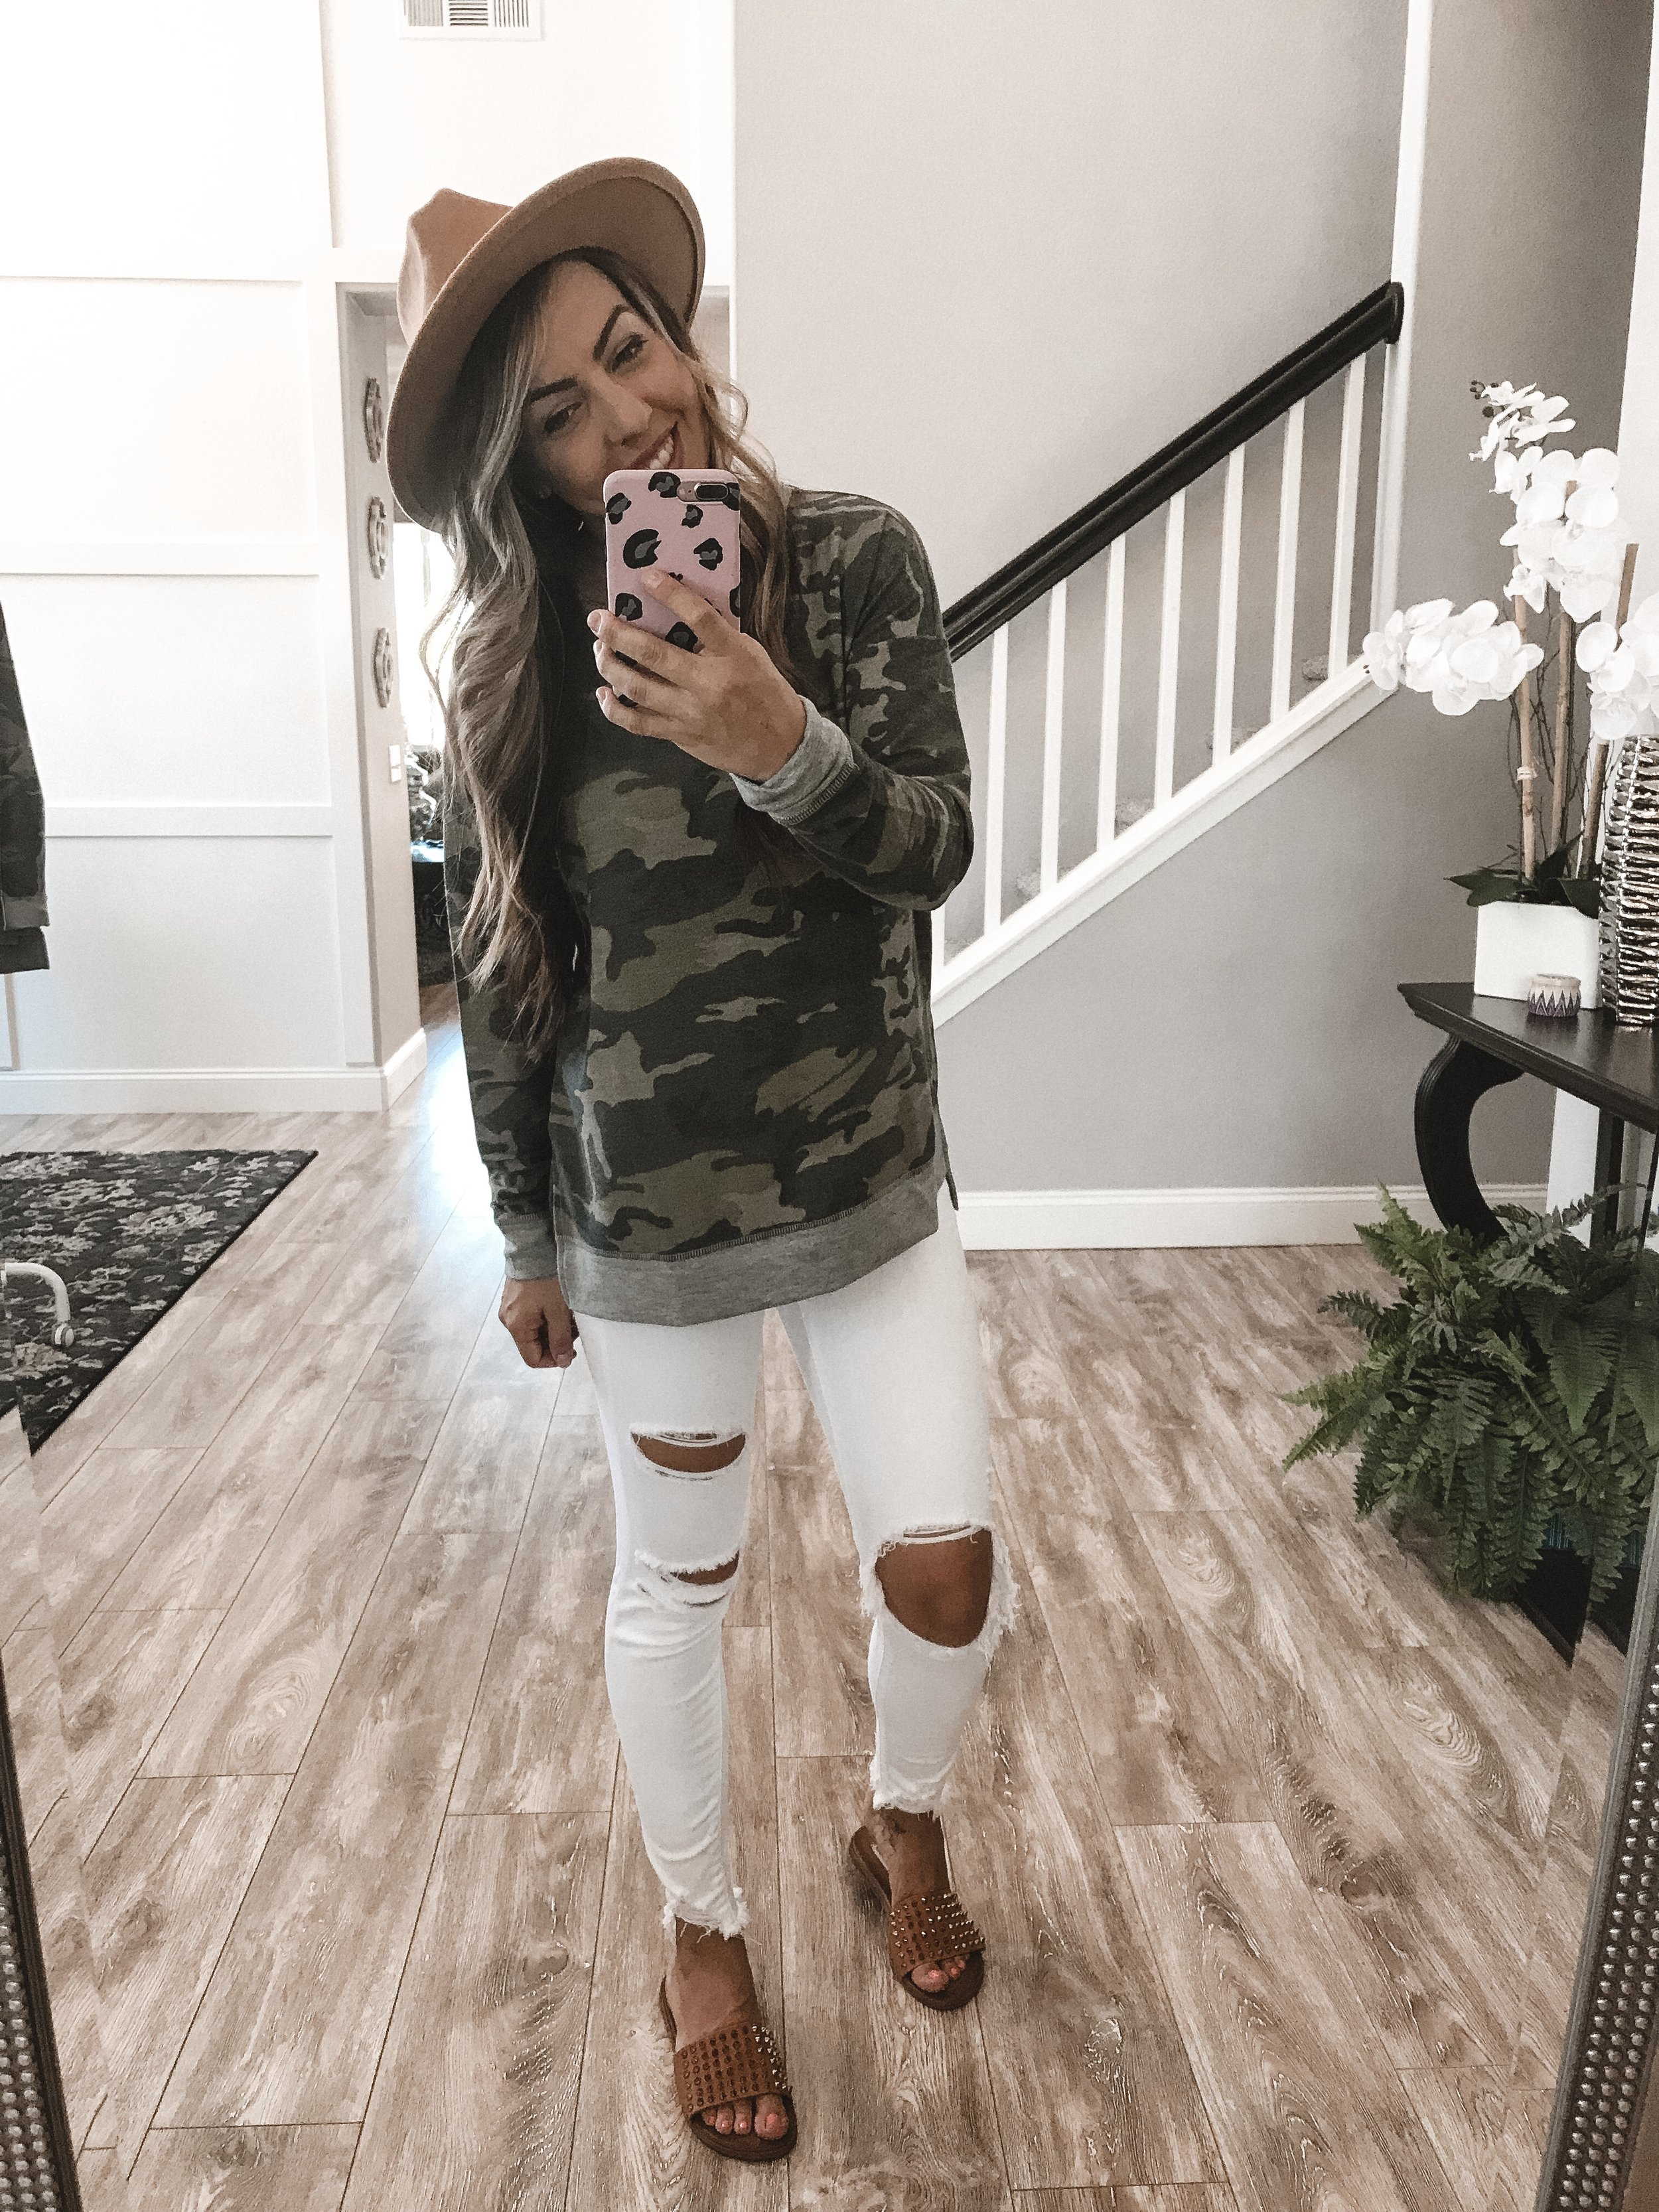 Camo and White Is My Fav! - Camo SweaterJeansSandalsHat